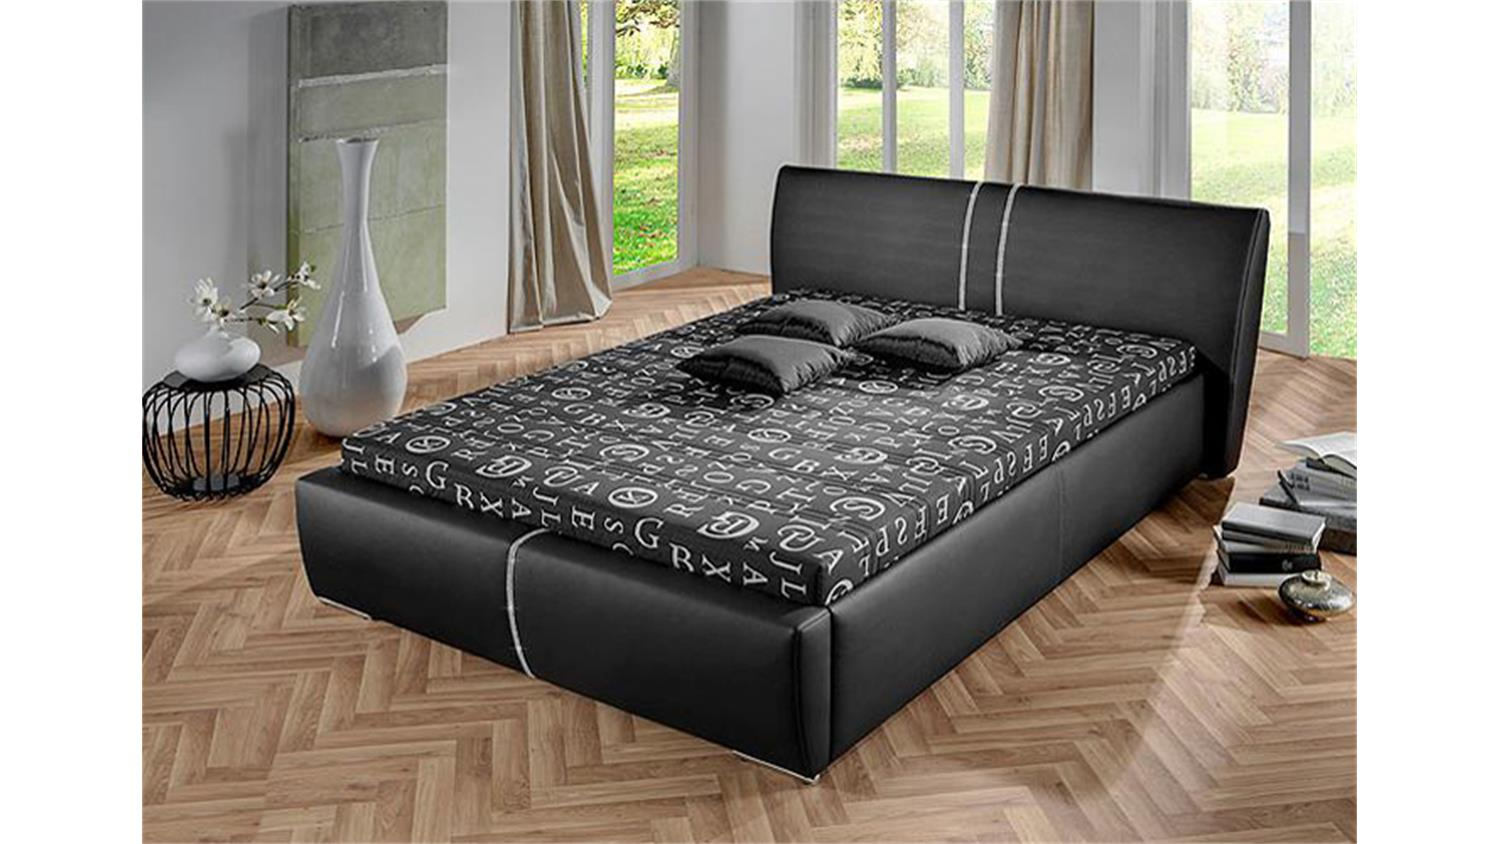 polsterbett perry bett in schwarz mit strasssteinen 140x200. Black Bedroom Furniture Sets. Home Design Ideas